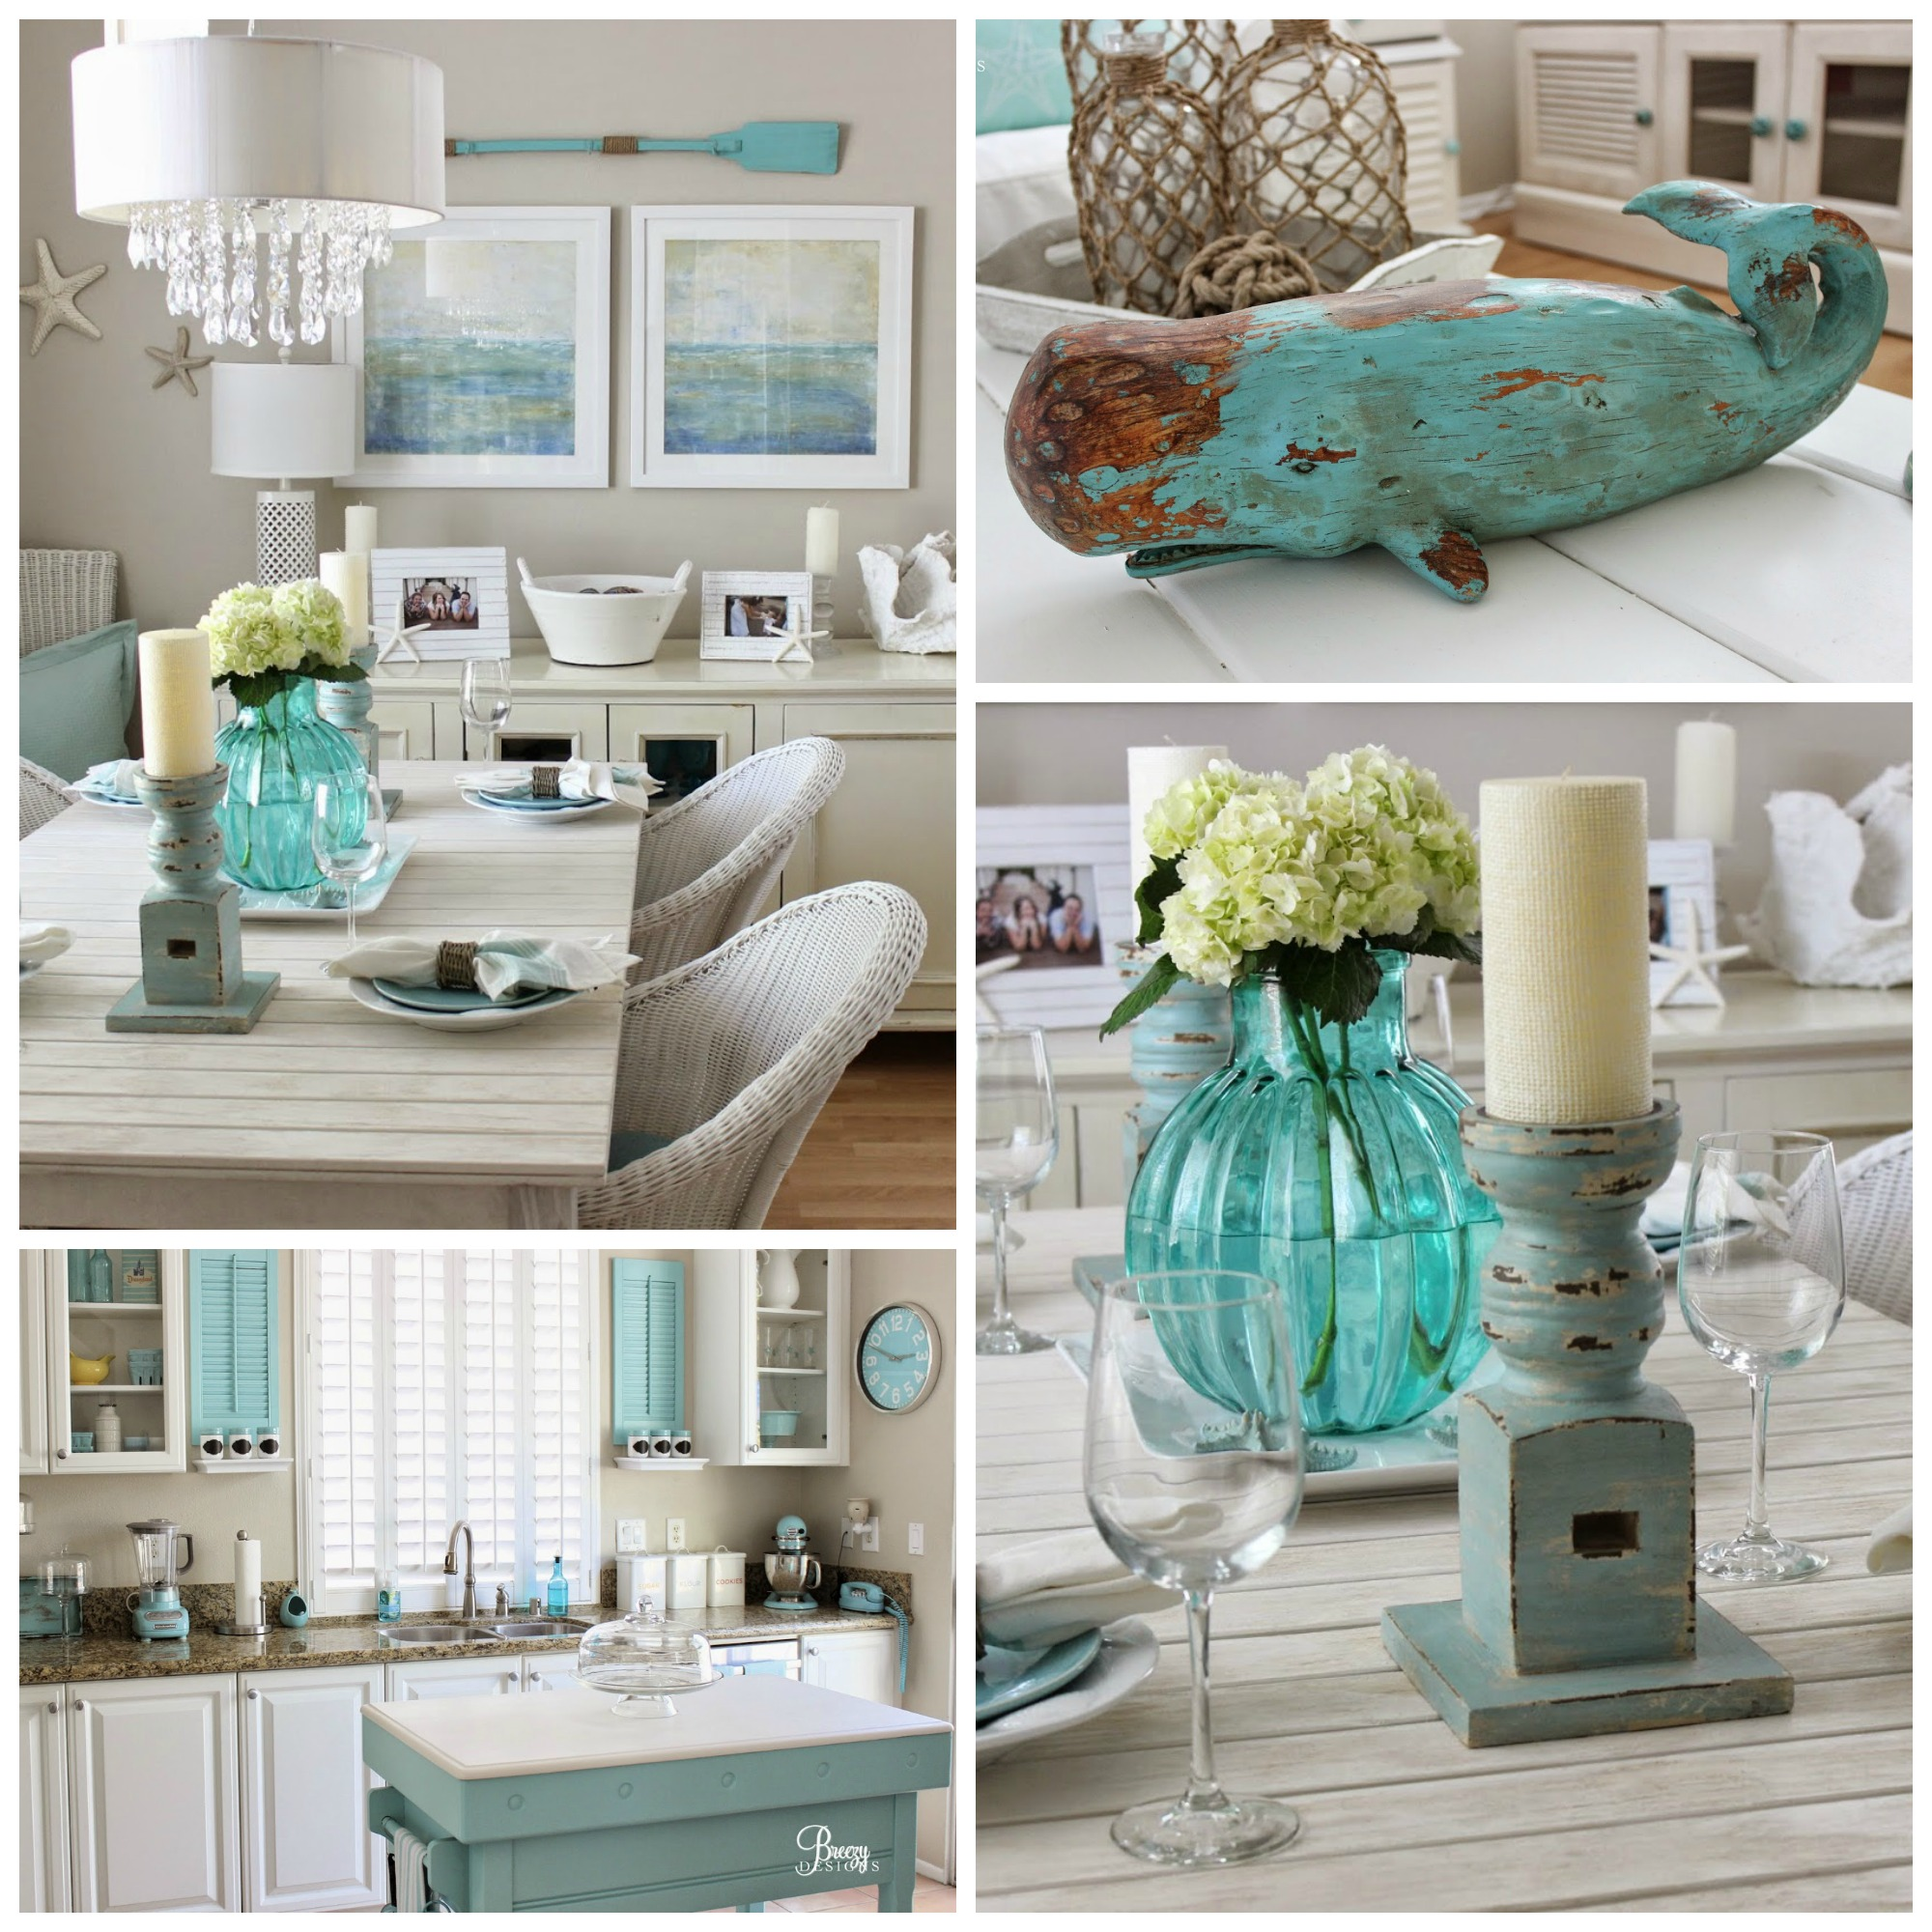 Beach chic coastal cottage home tour with breezy design for Small home decor items